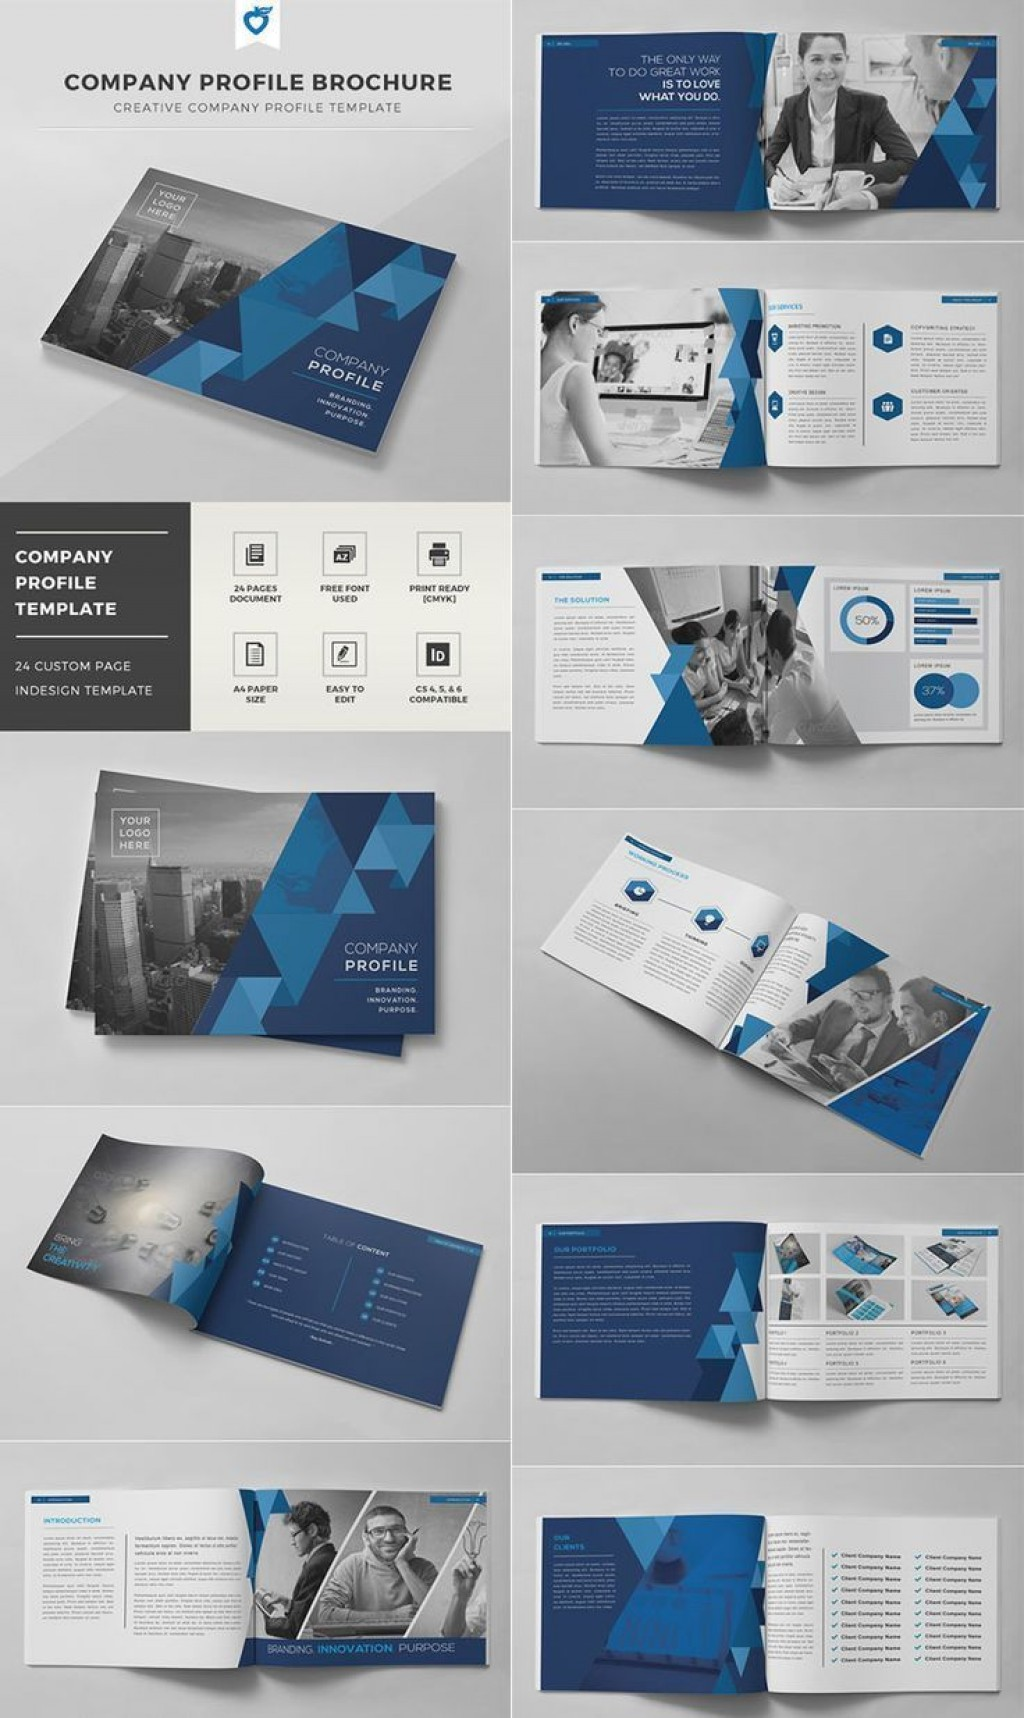 003 Astounding Busines Brochure Design Template Free Download Inspiration Large